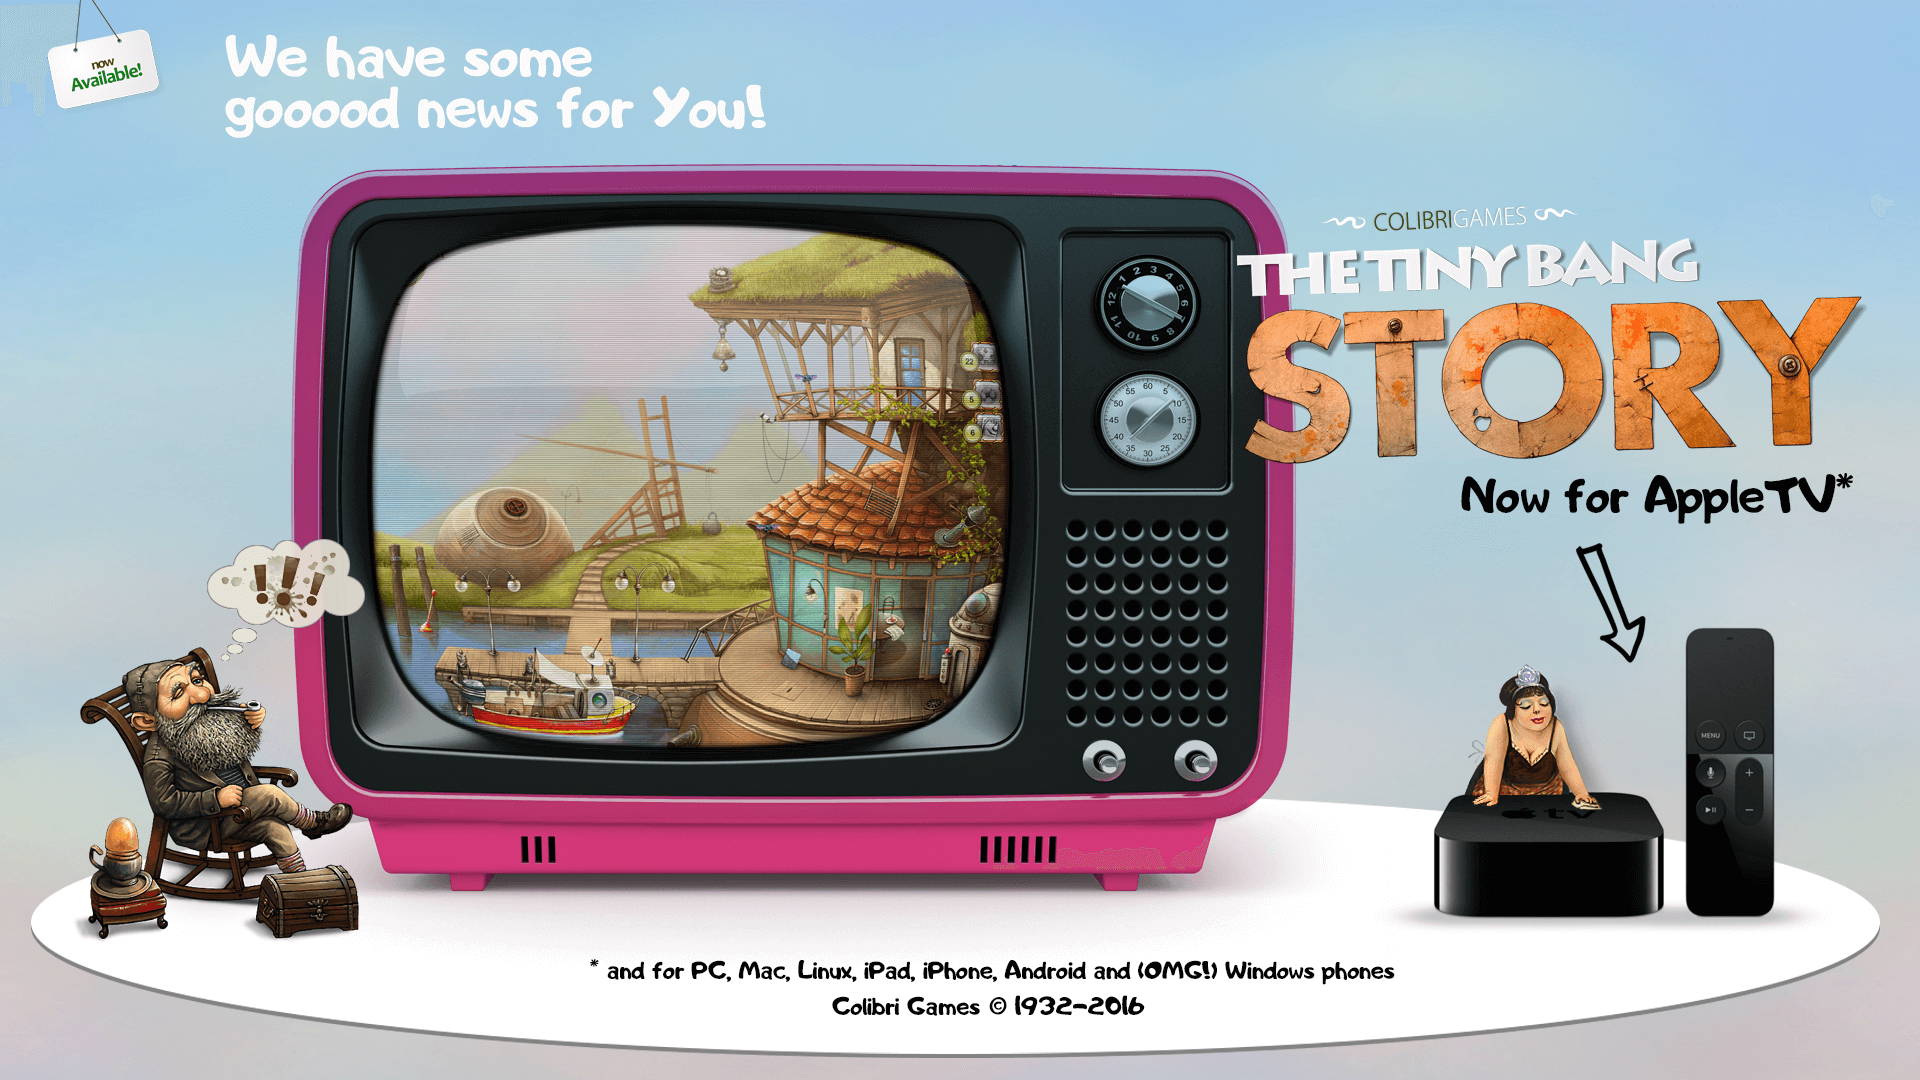 The Tiny Bankg Story Apple TV Game